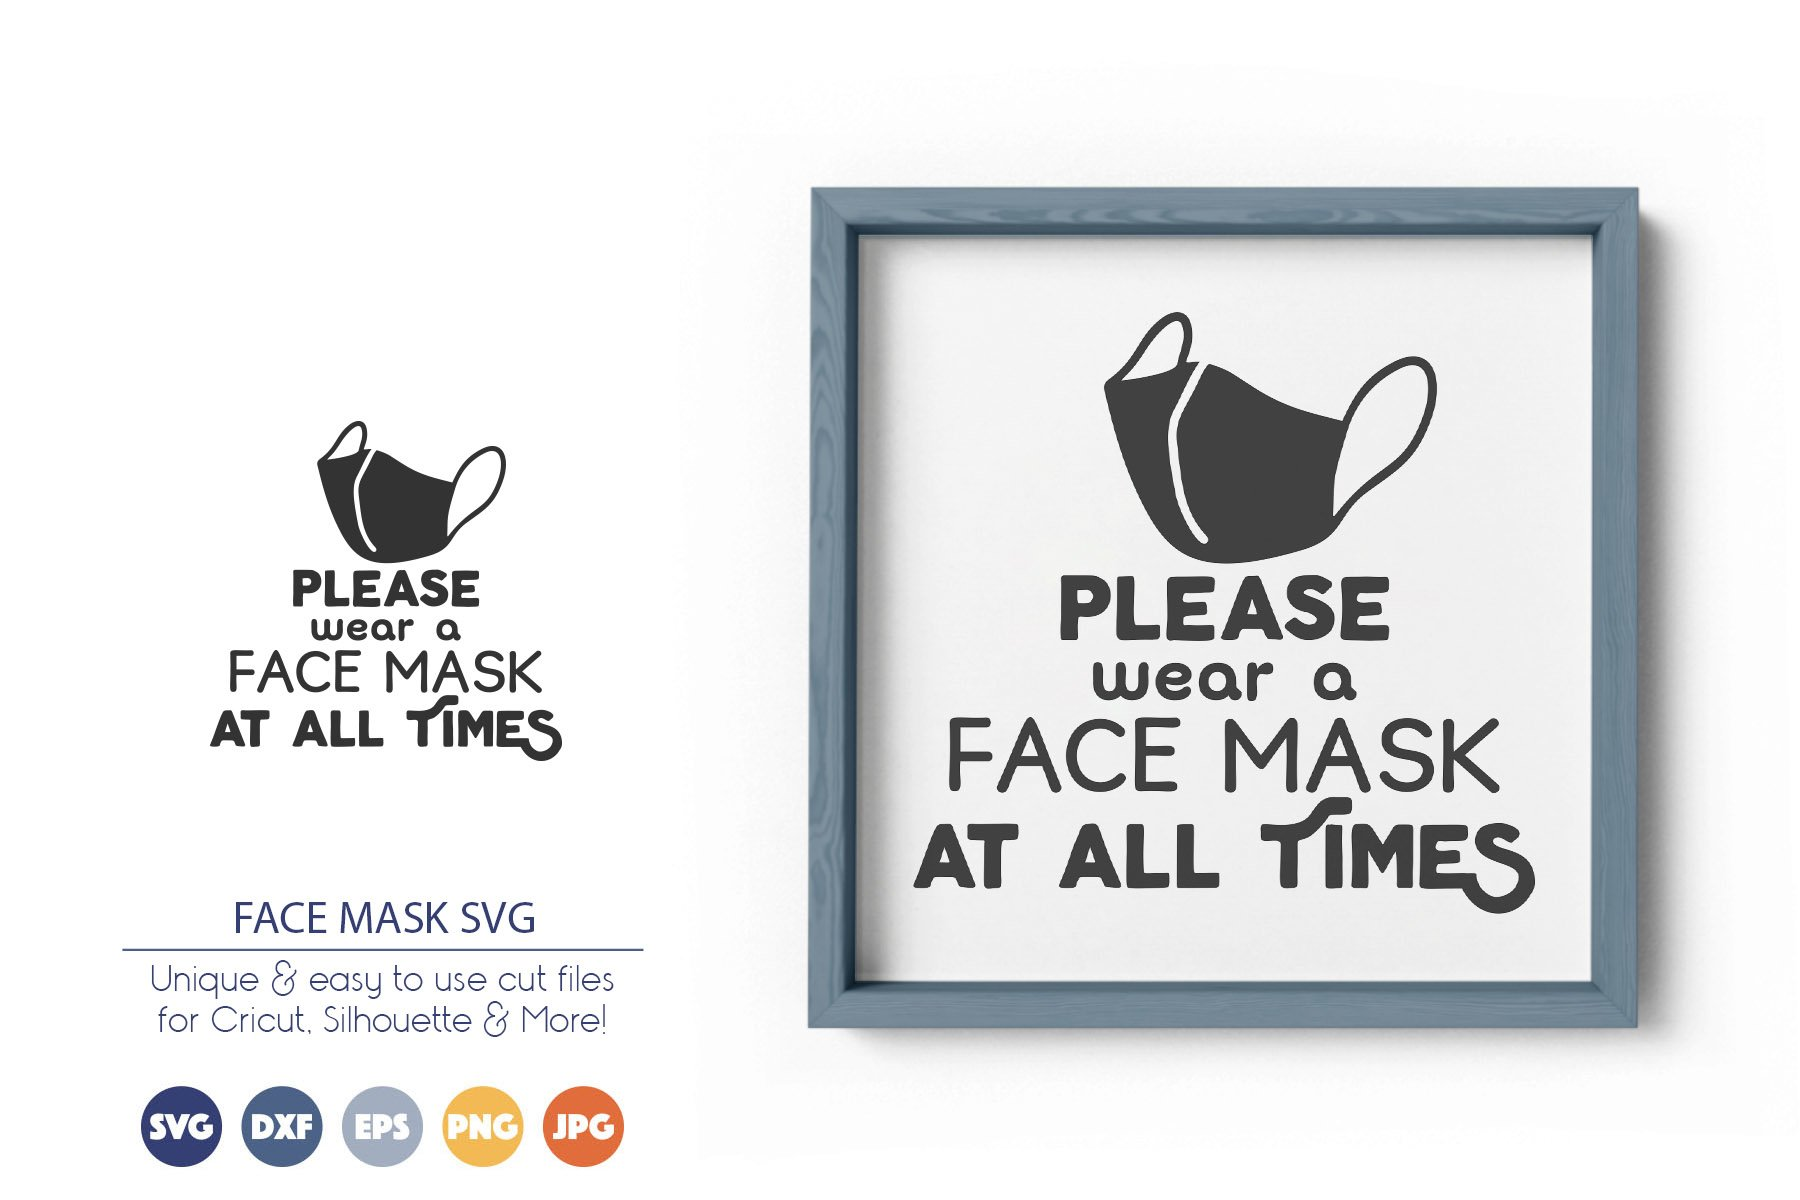 Face Mask SVG | Quarantine Sign SVG example image 1